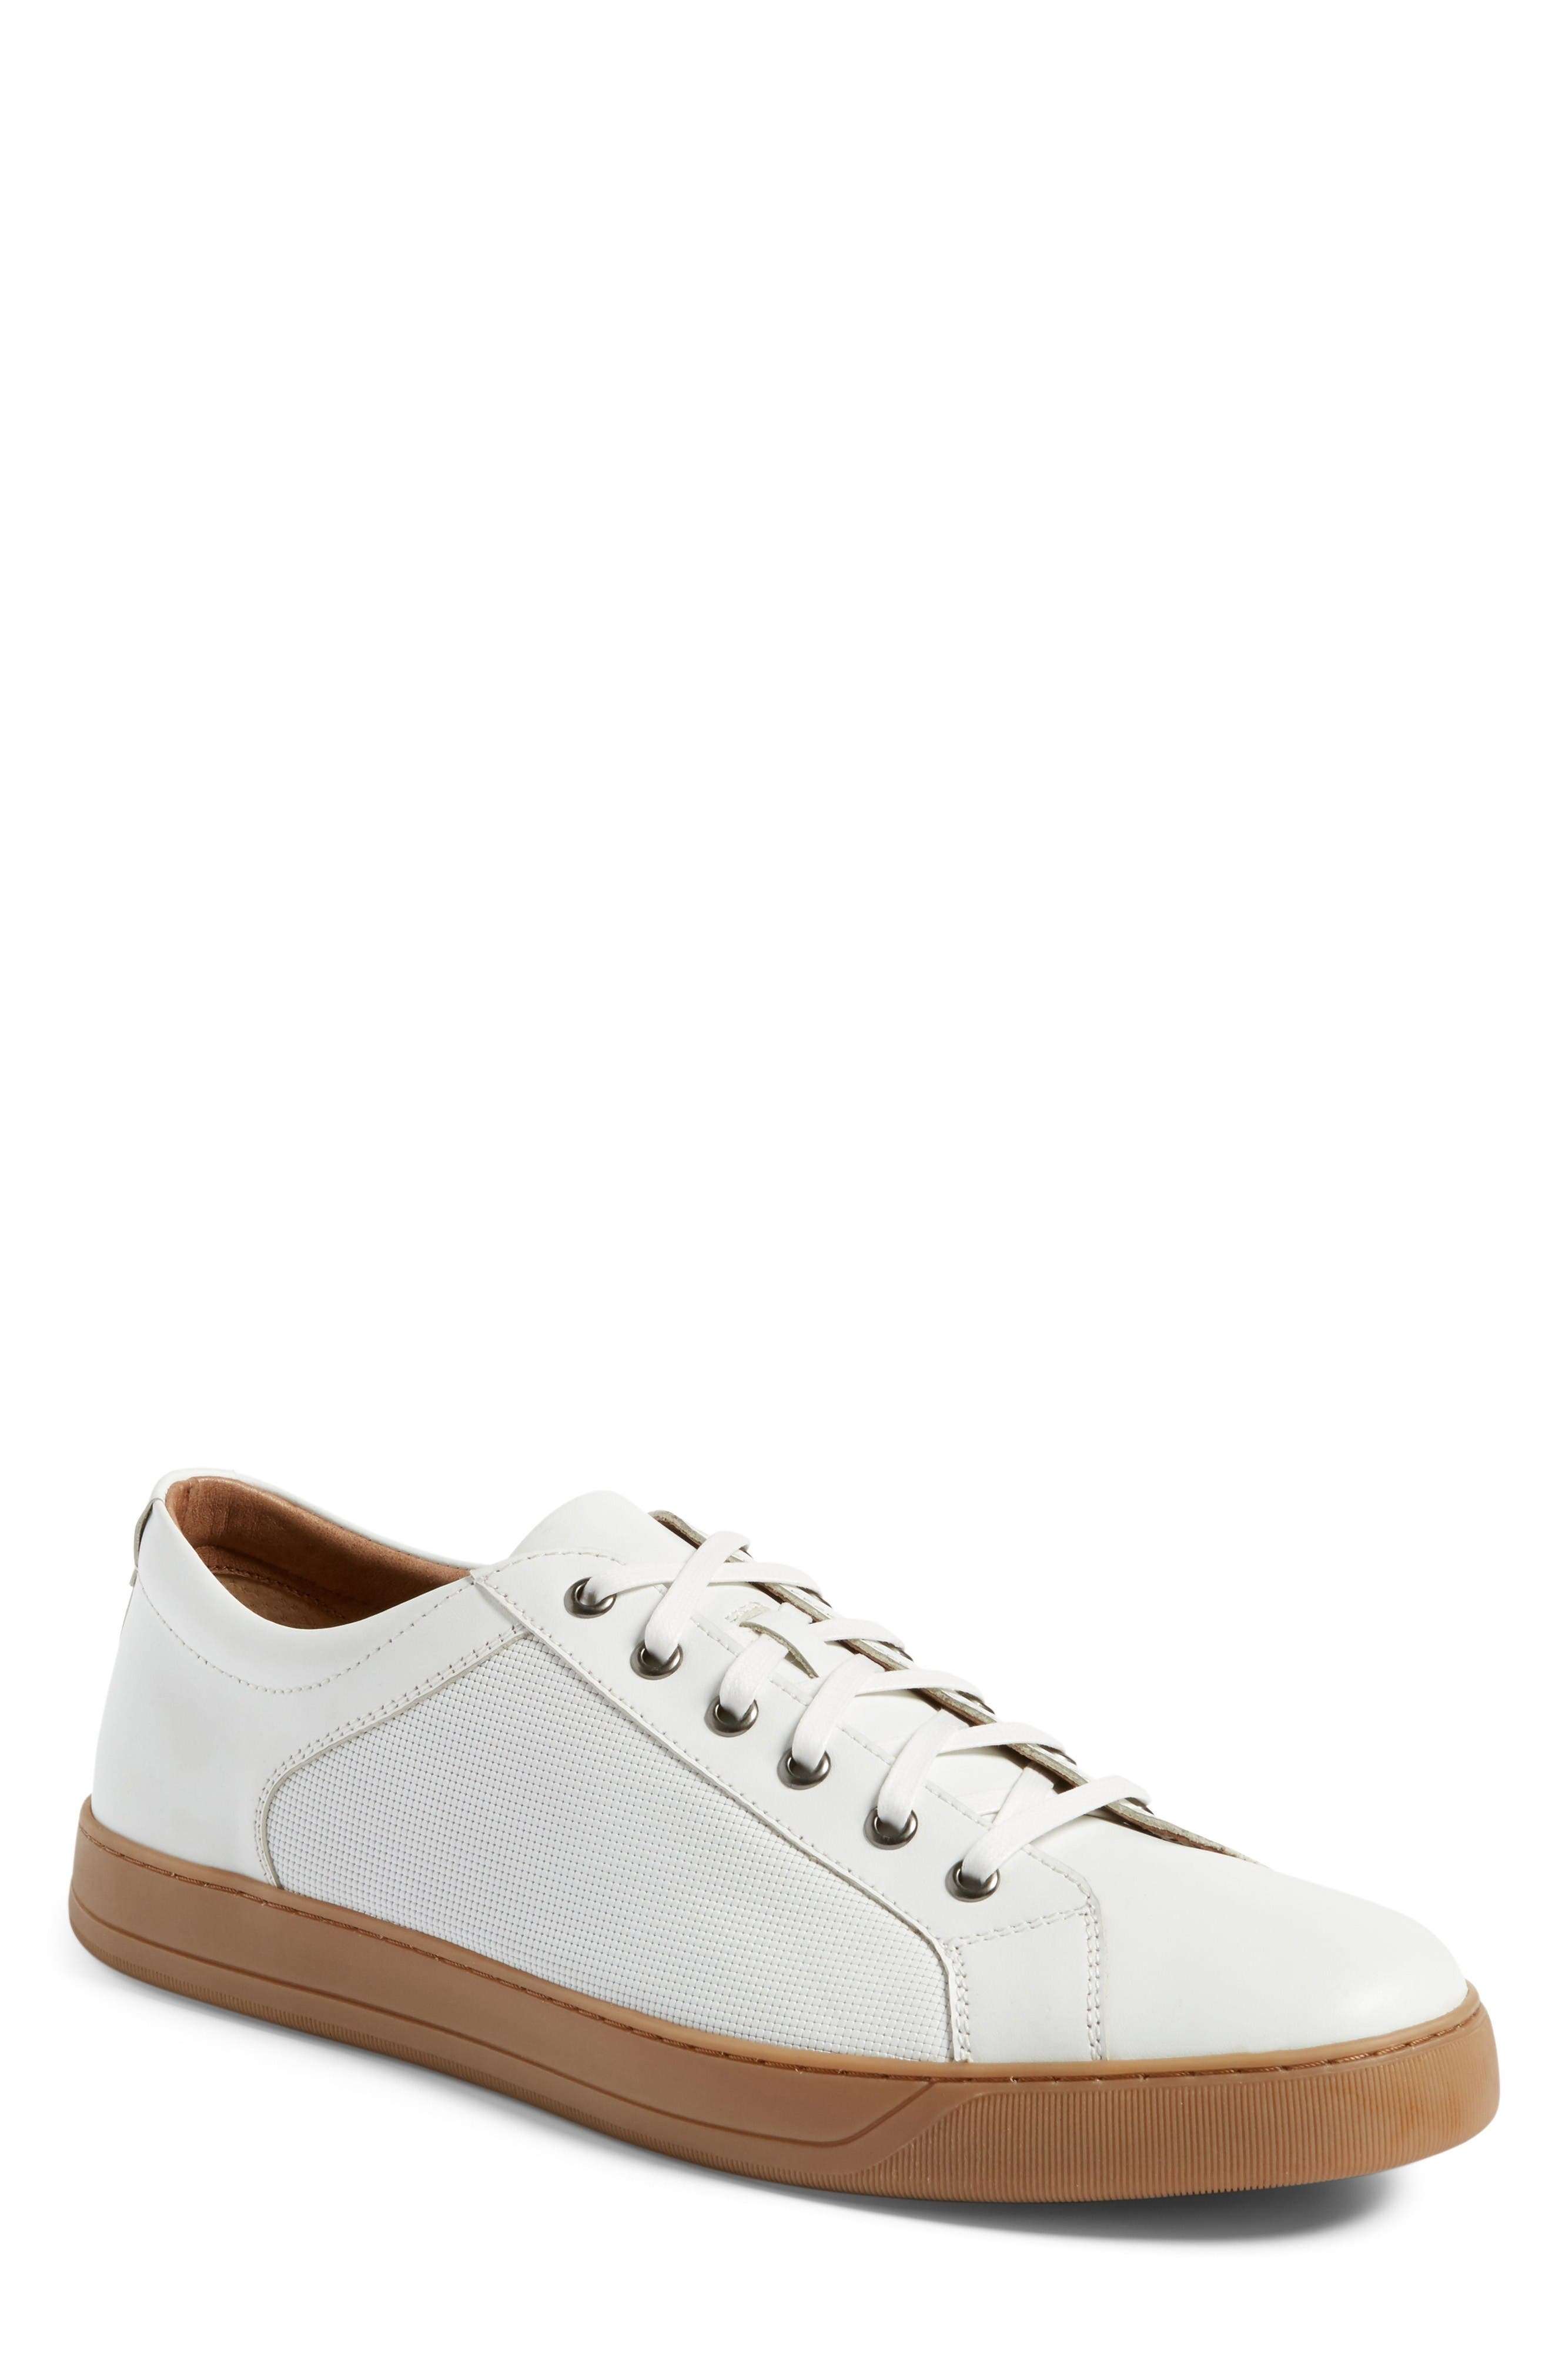 prada shoes sale overstock items closeouts express